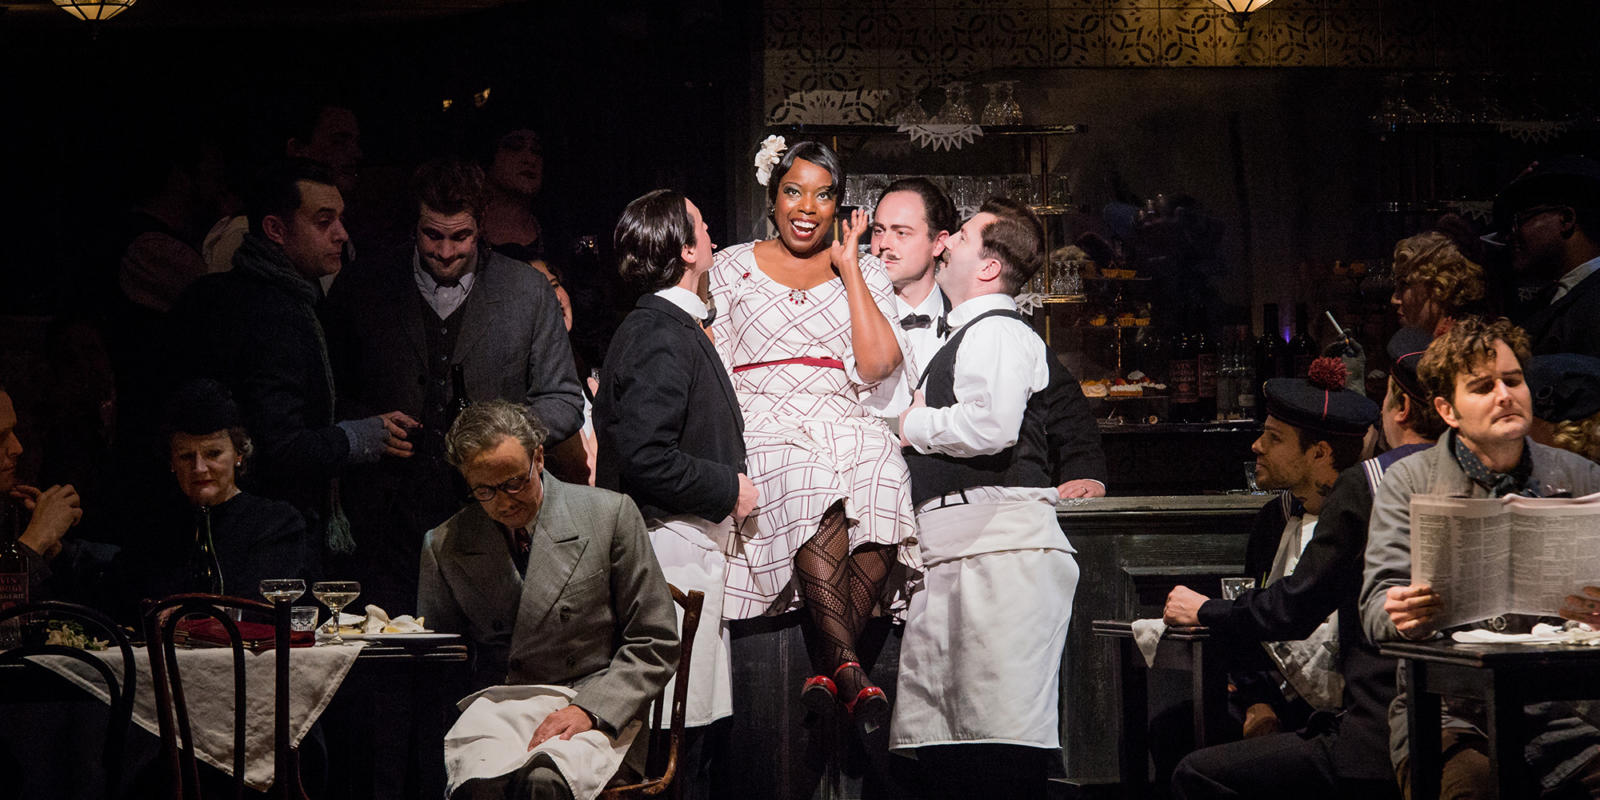 ENO La bohème: Nadine Benjamin and cast (c) Robert Workman